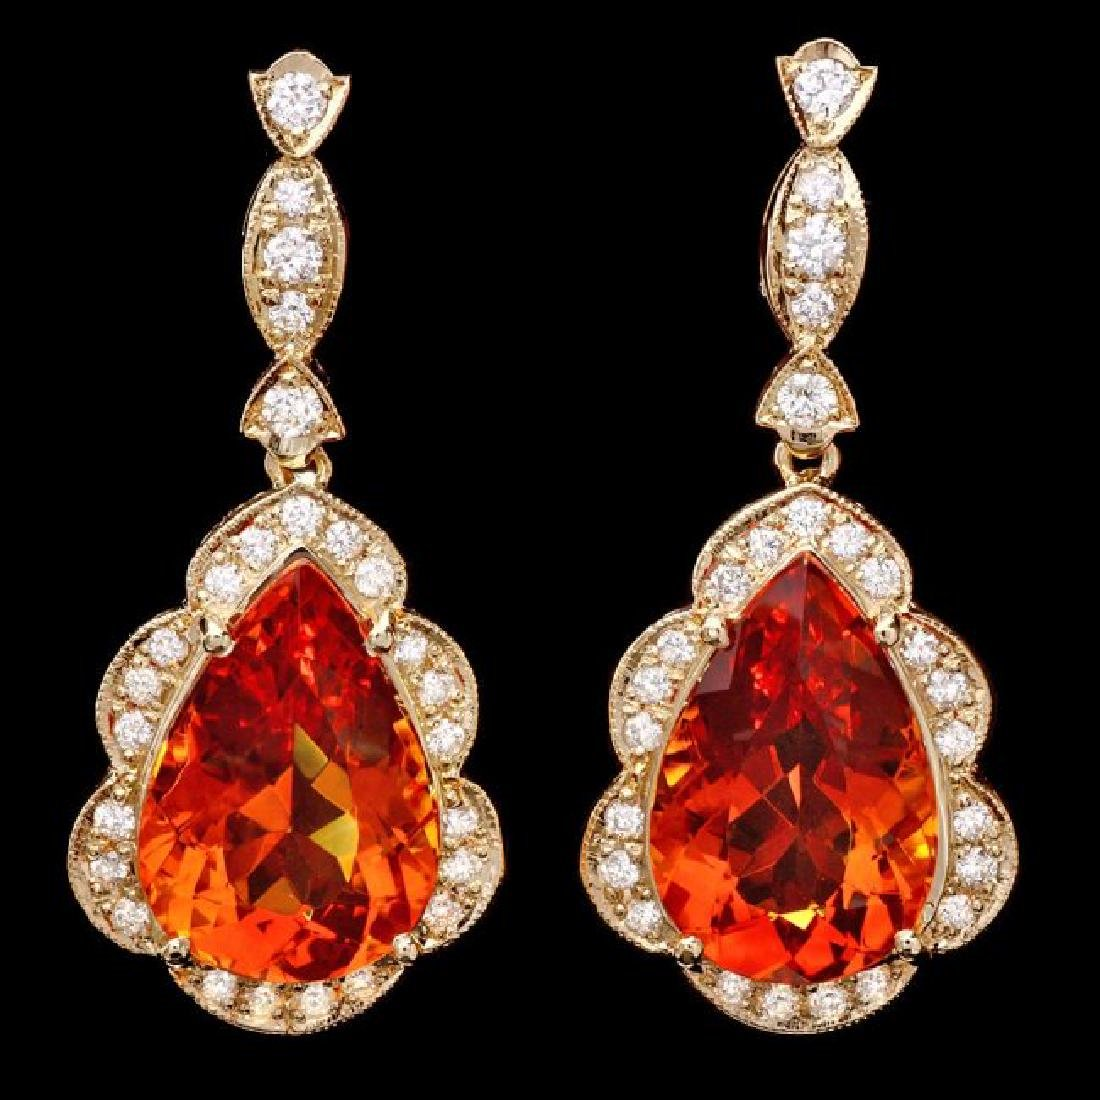 14k Gold 17ct Citrine 1.40ct Diamond Earrings